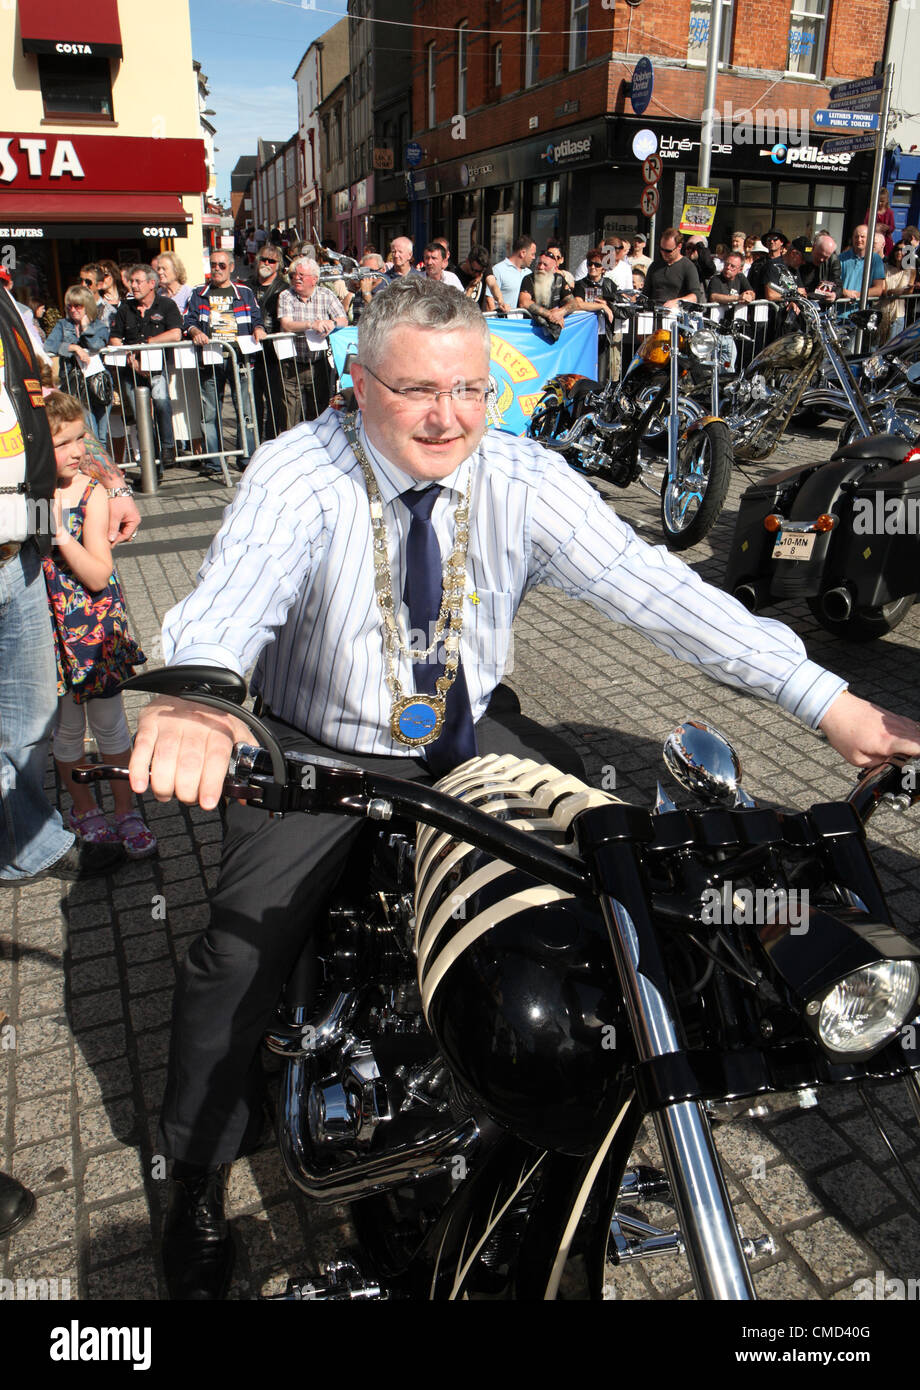 Waterford Motorcycle Fest 2012 Ireland - Stock Image